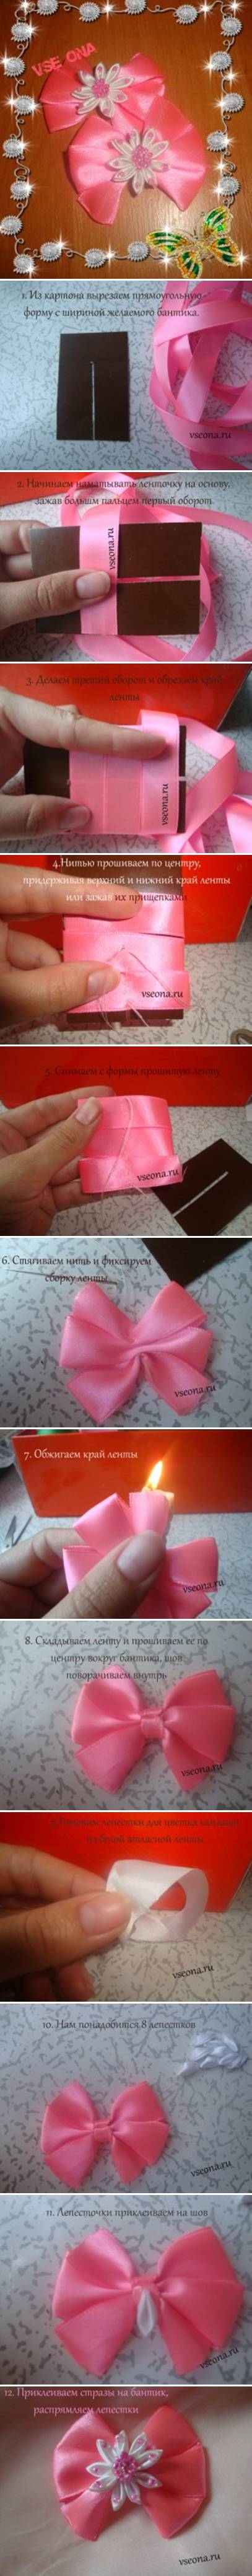 How to make Beginner Flower Bow step by step DIY tutorial instructions